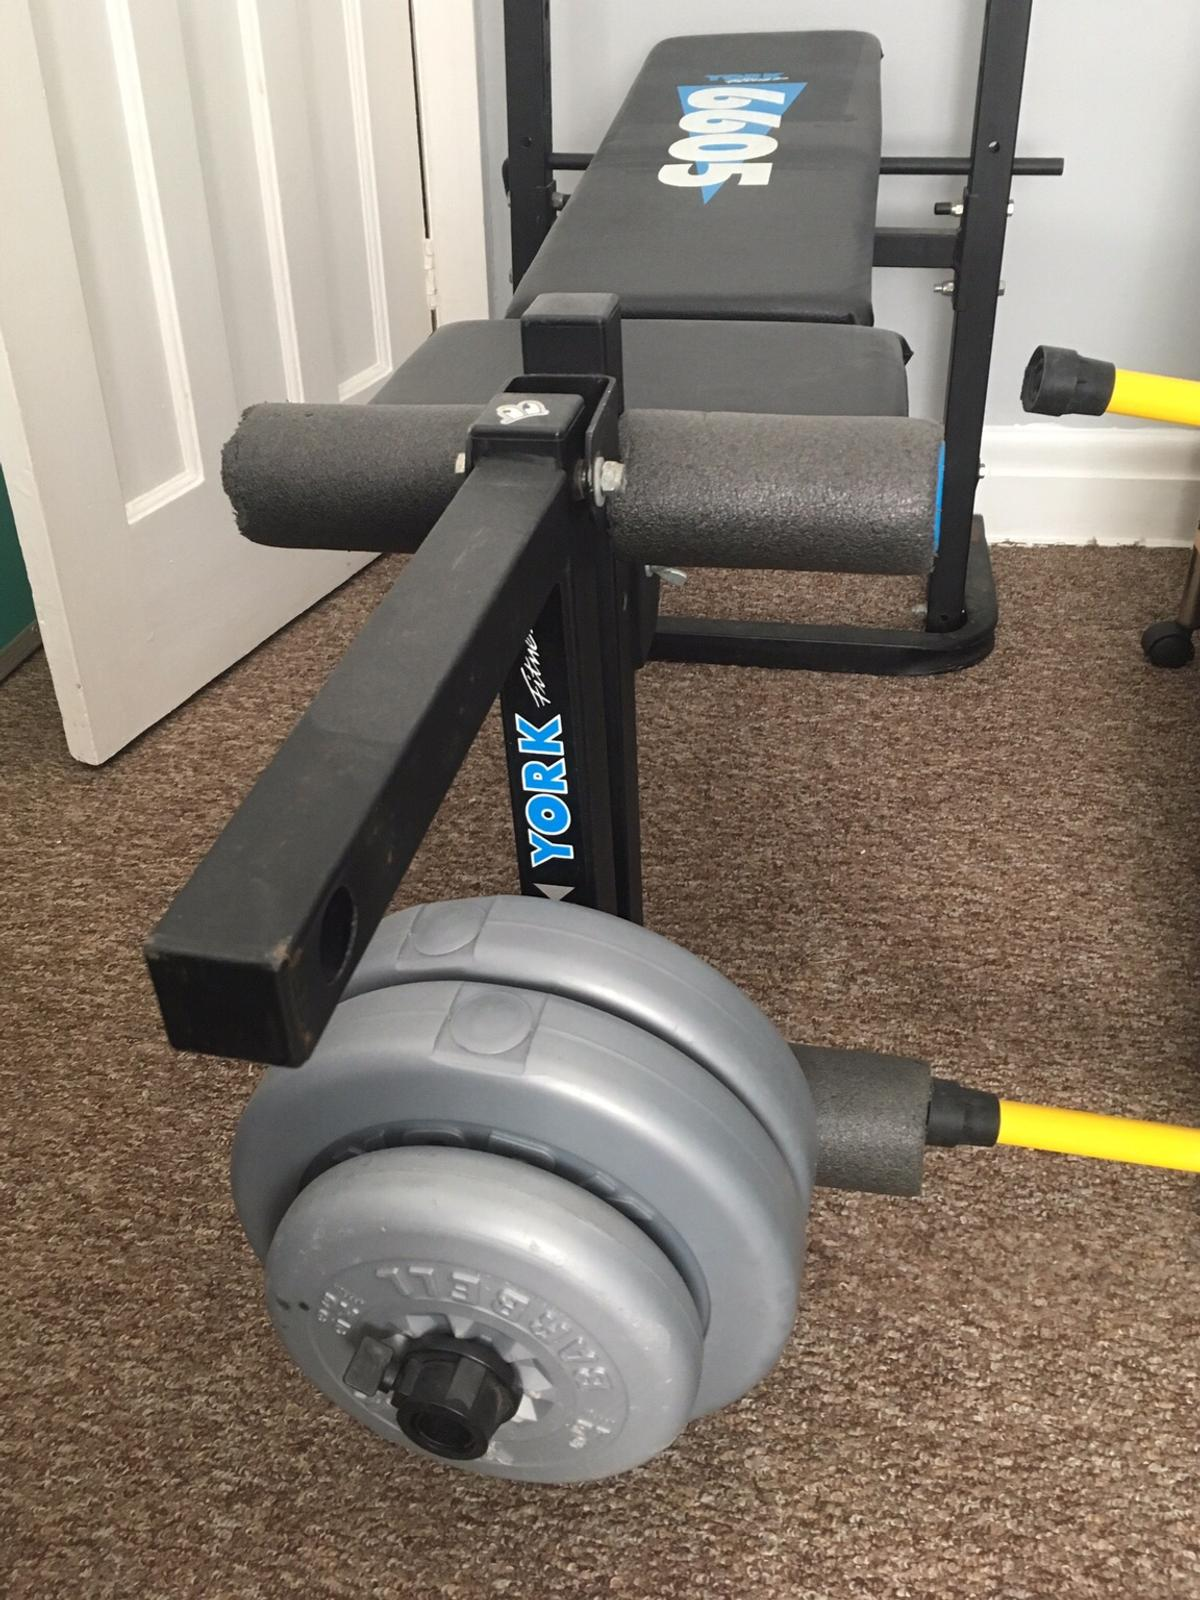 York Fitness 6605 weight bench in L13